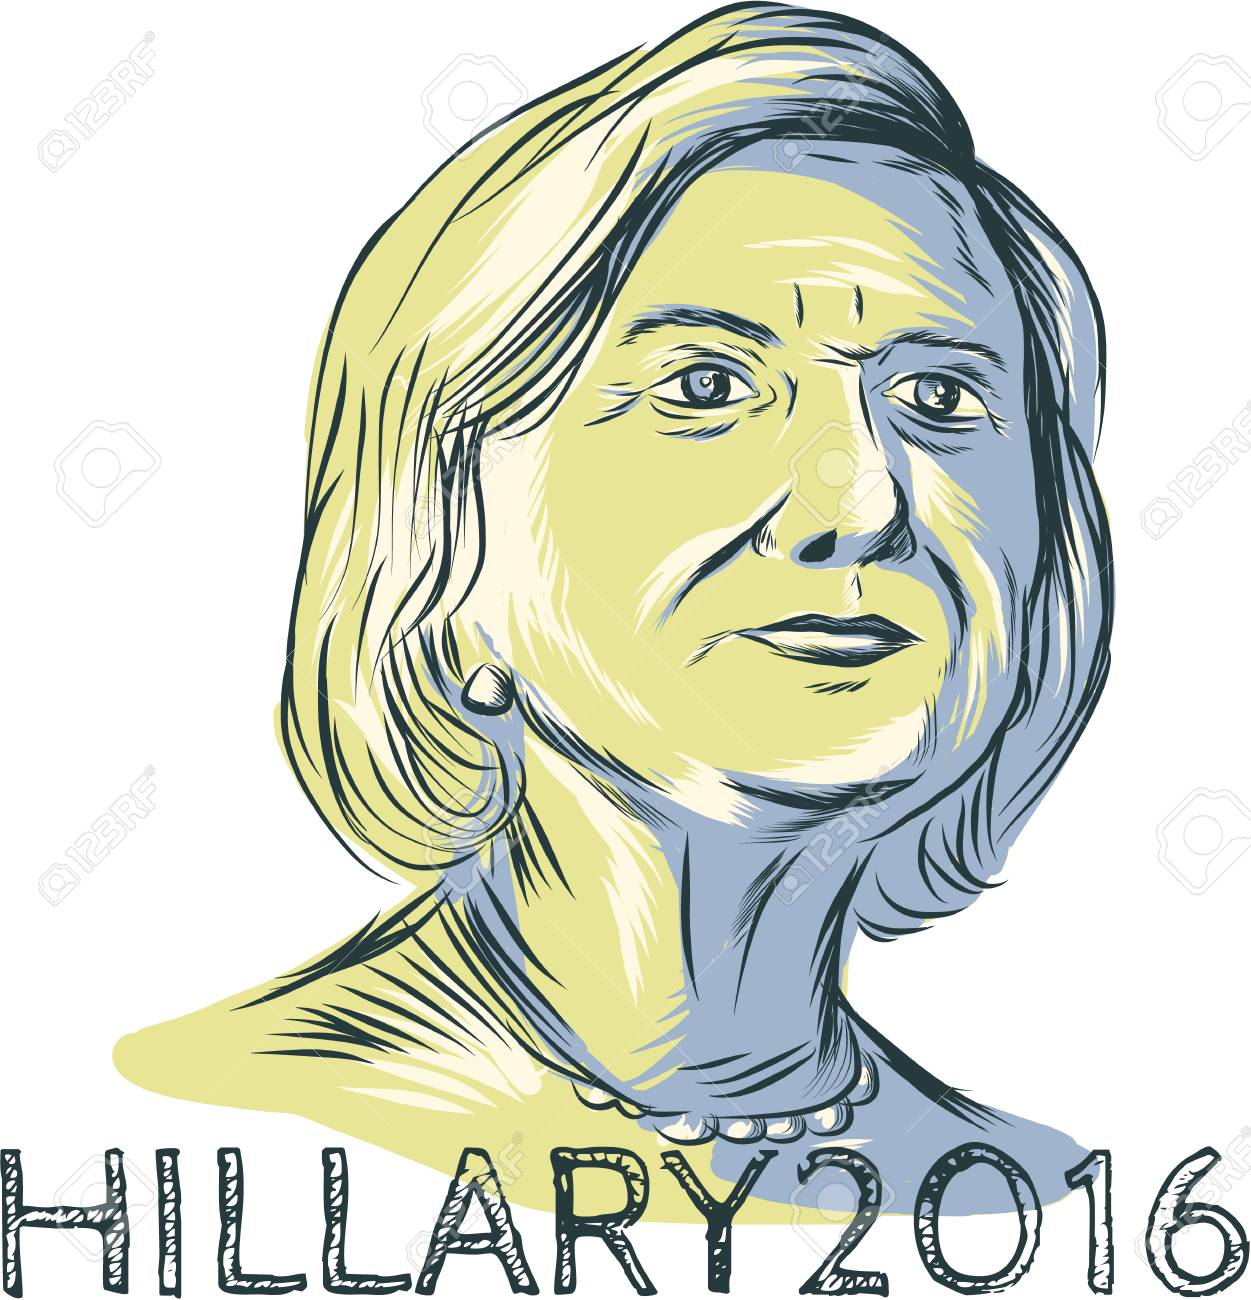 1251x1300 Drawing Sketch Style Illustration Showing Democrat Presidential